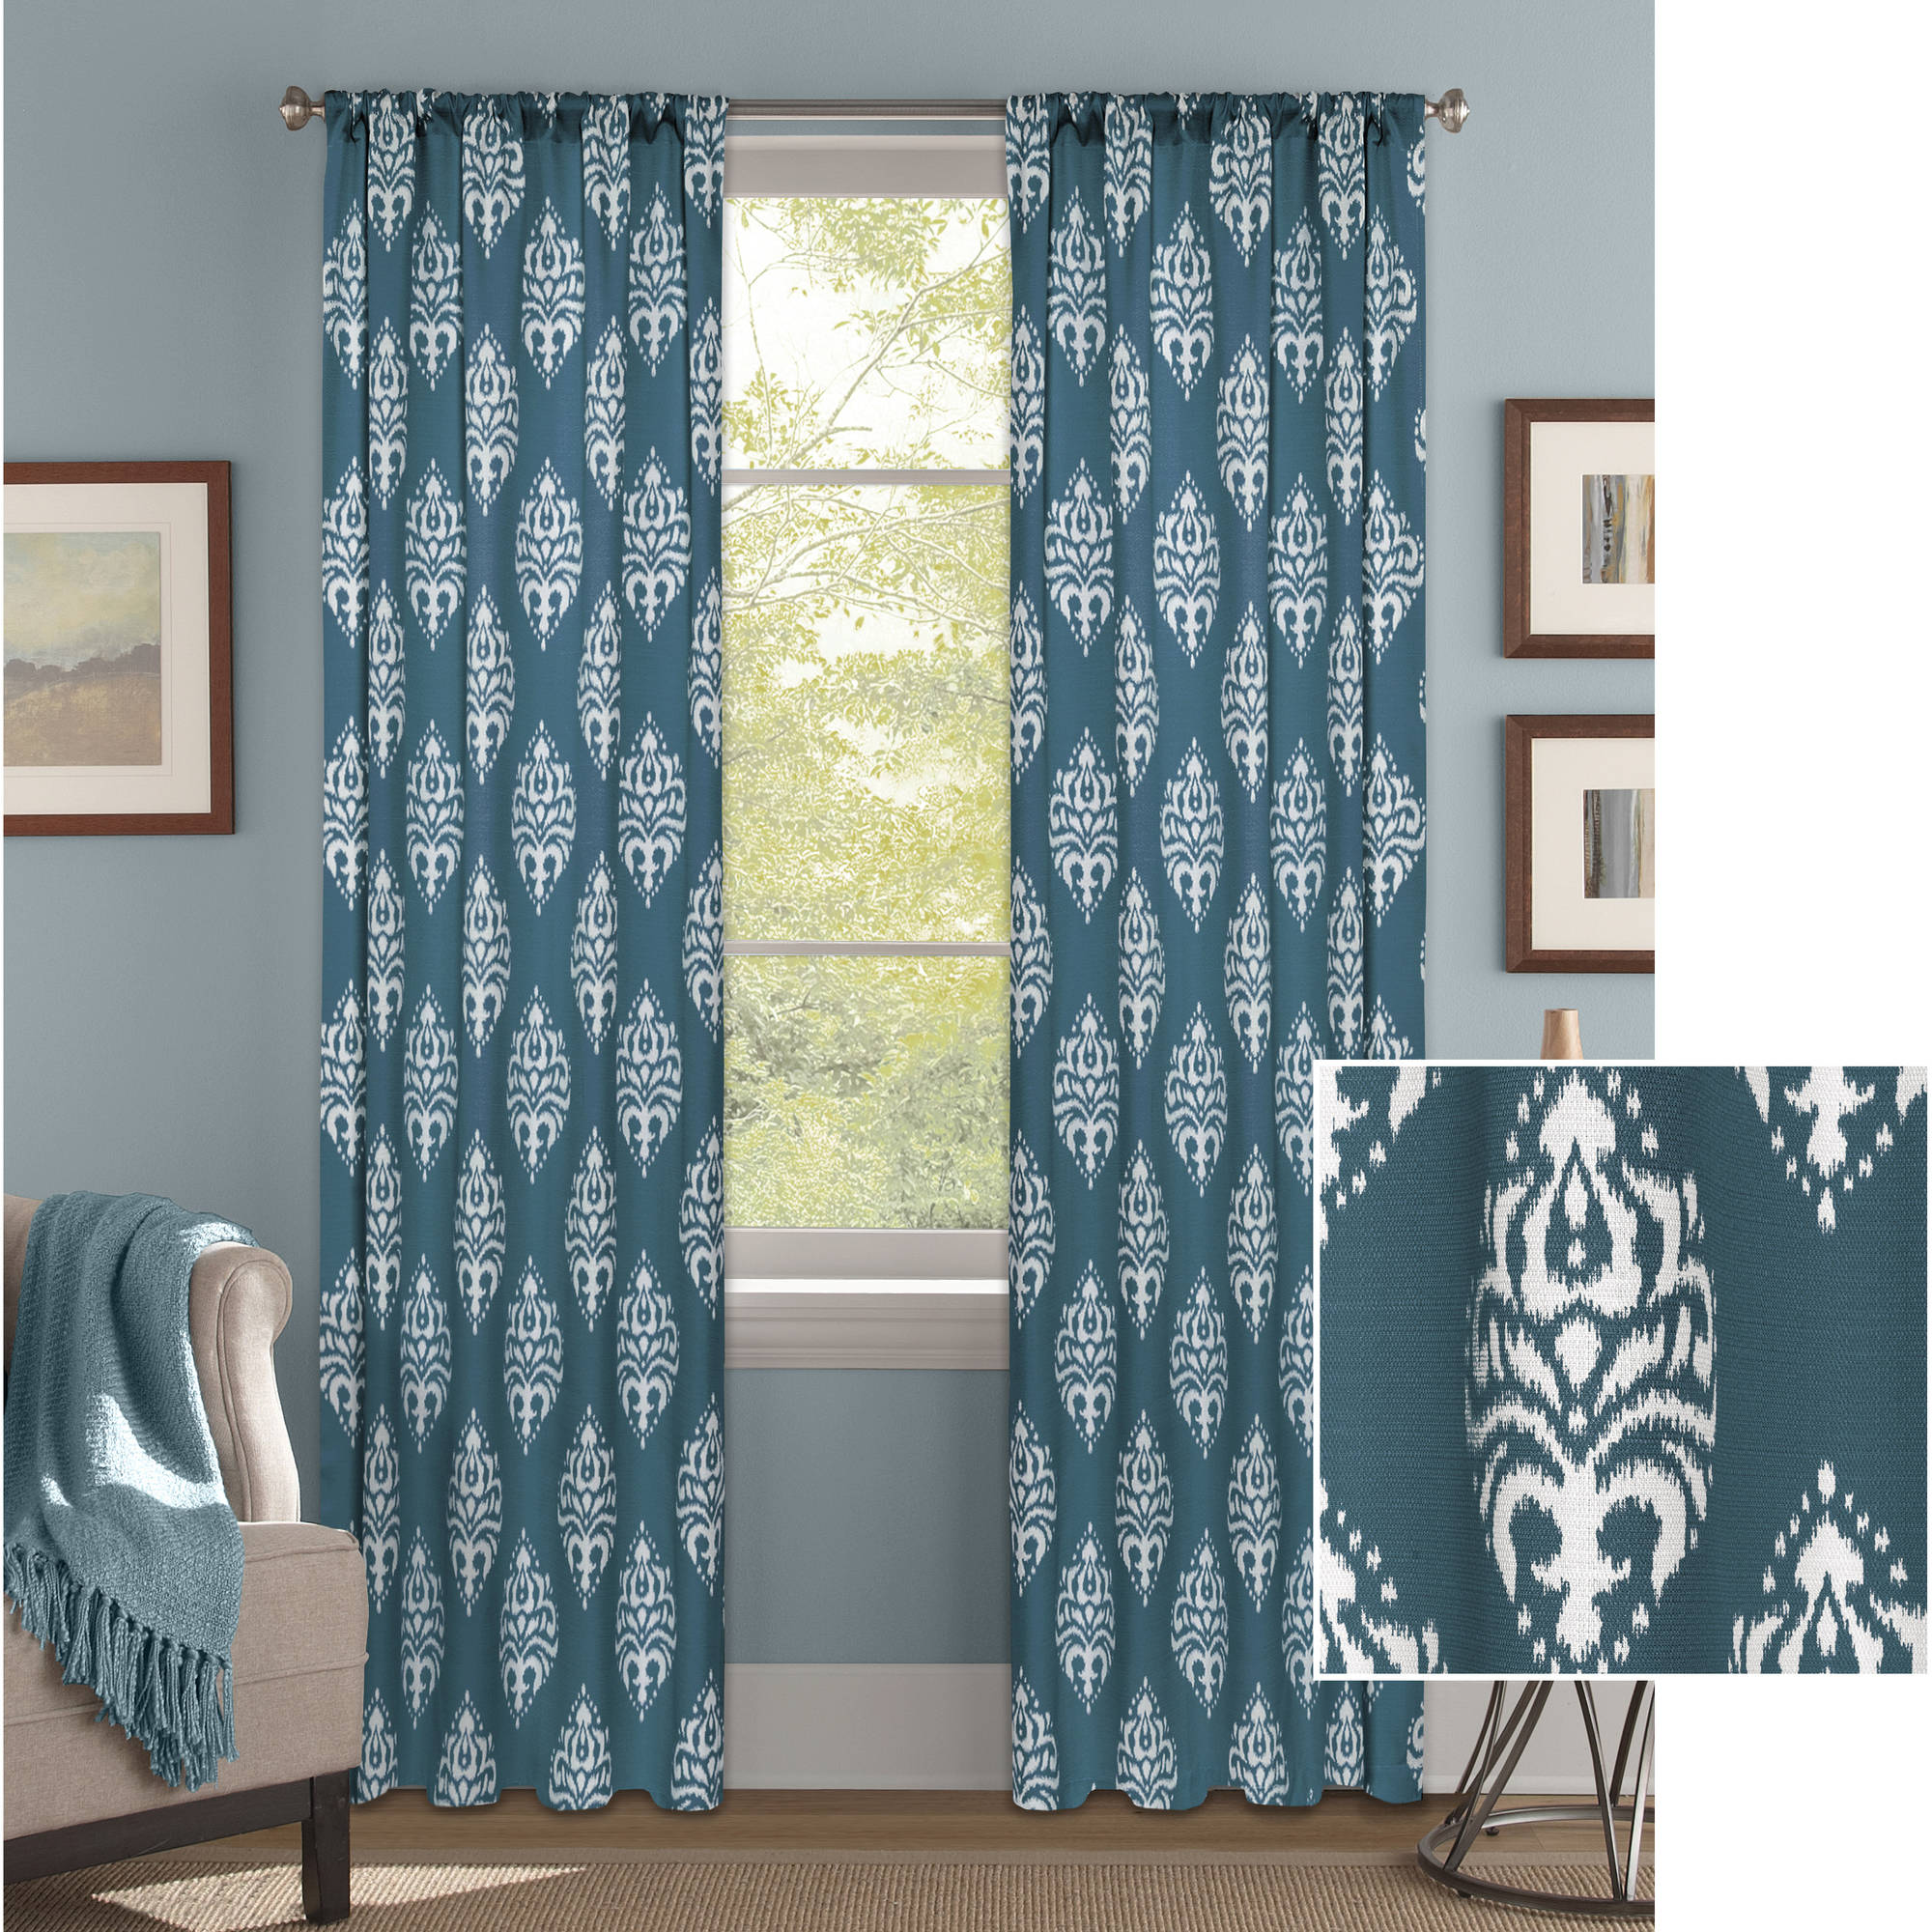 Curtains For Sale At Walmart Better Homes And Gardens Traditional Damask Curtain Panel